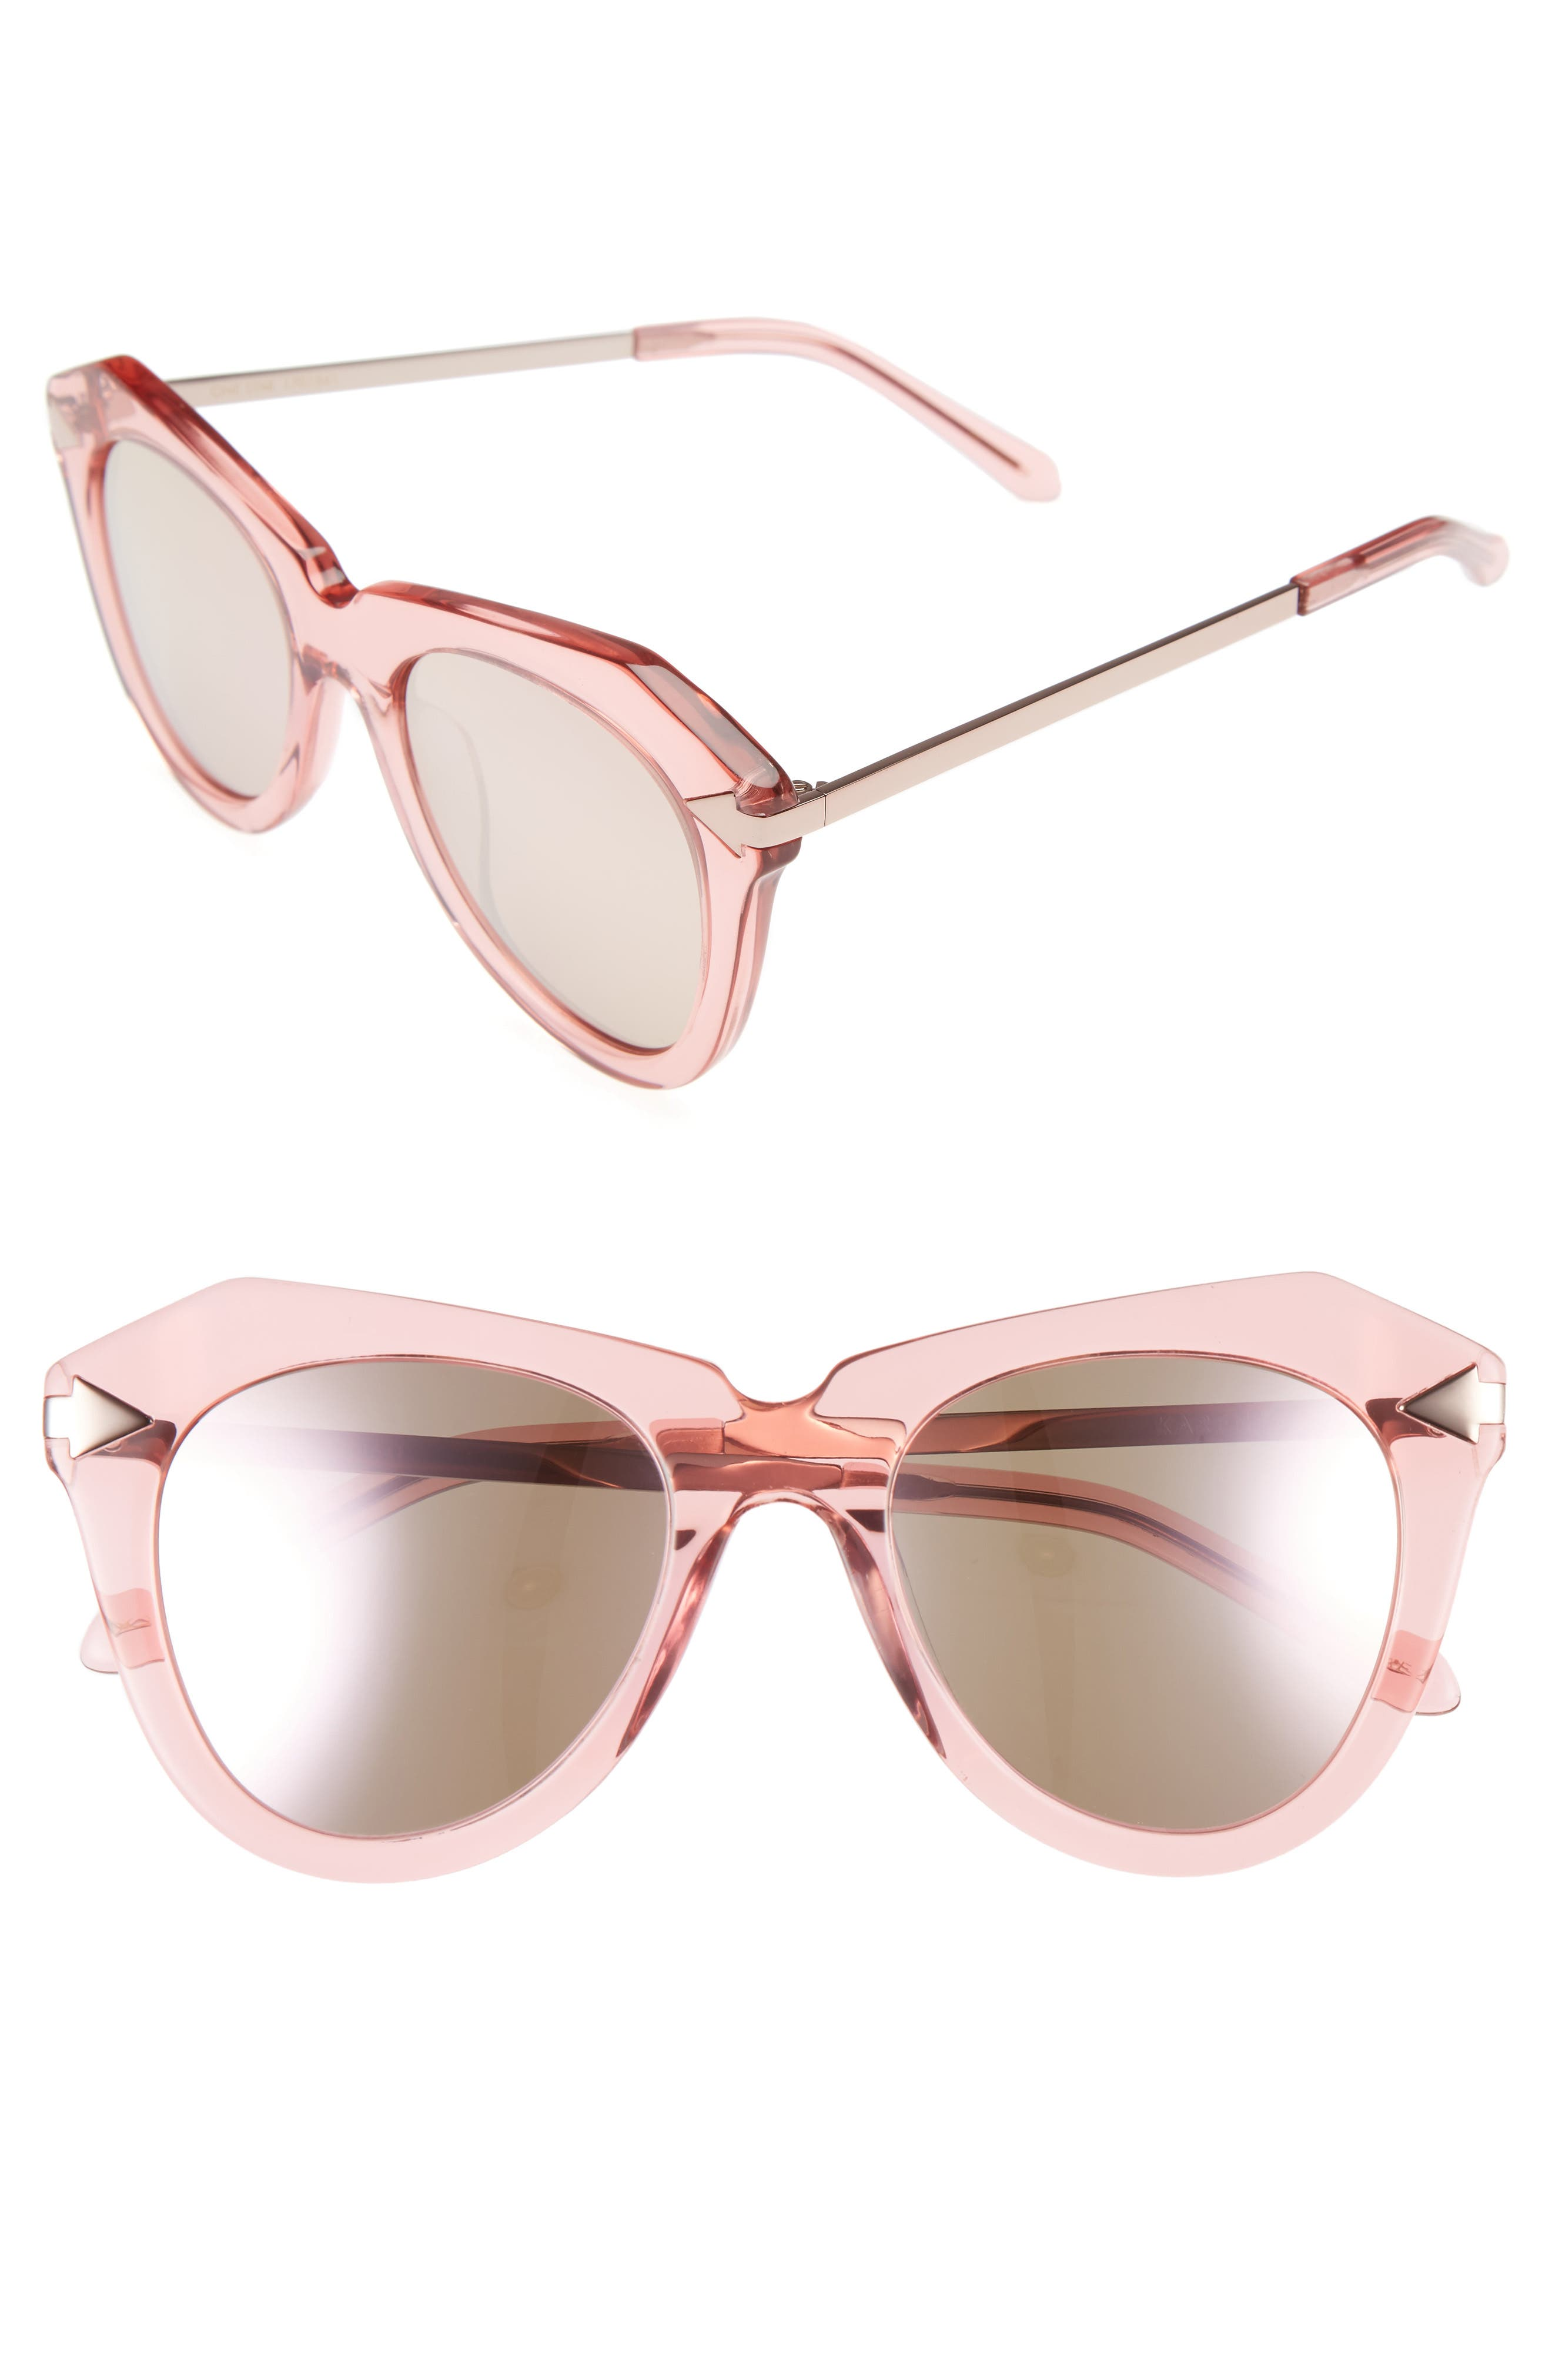 Alternate Image 1 Selected - Karen Walker One Star 50mm Retro Sunglasses